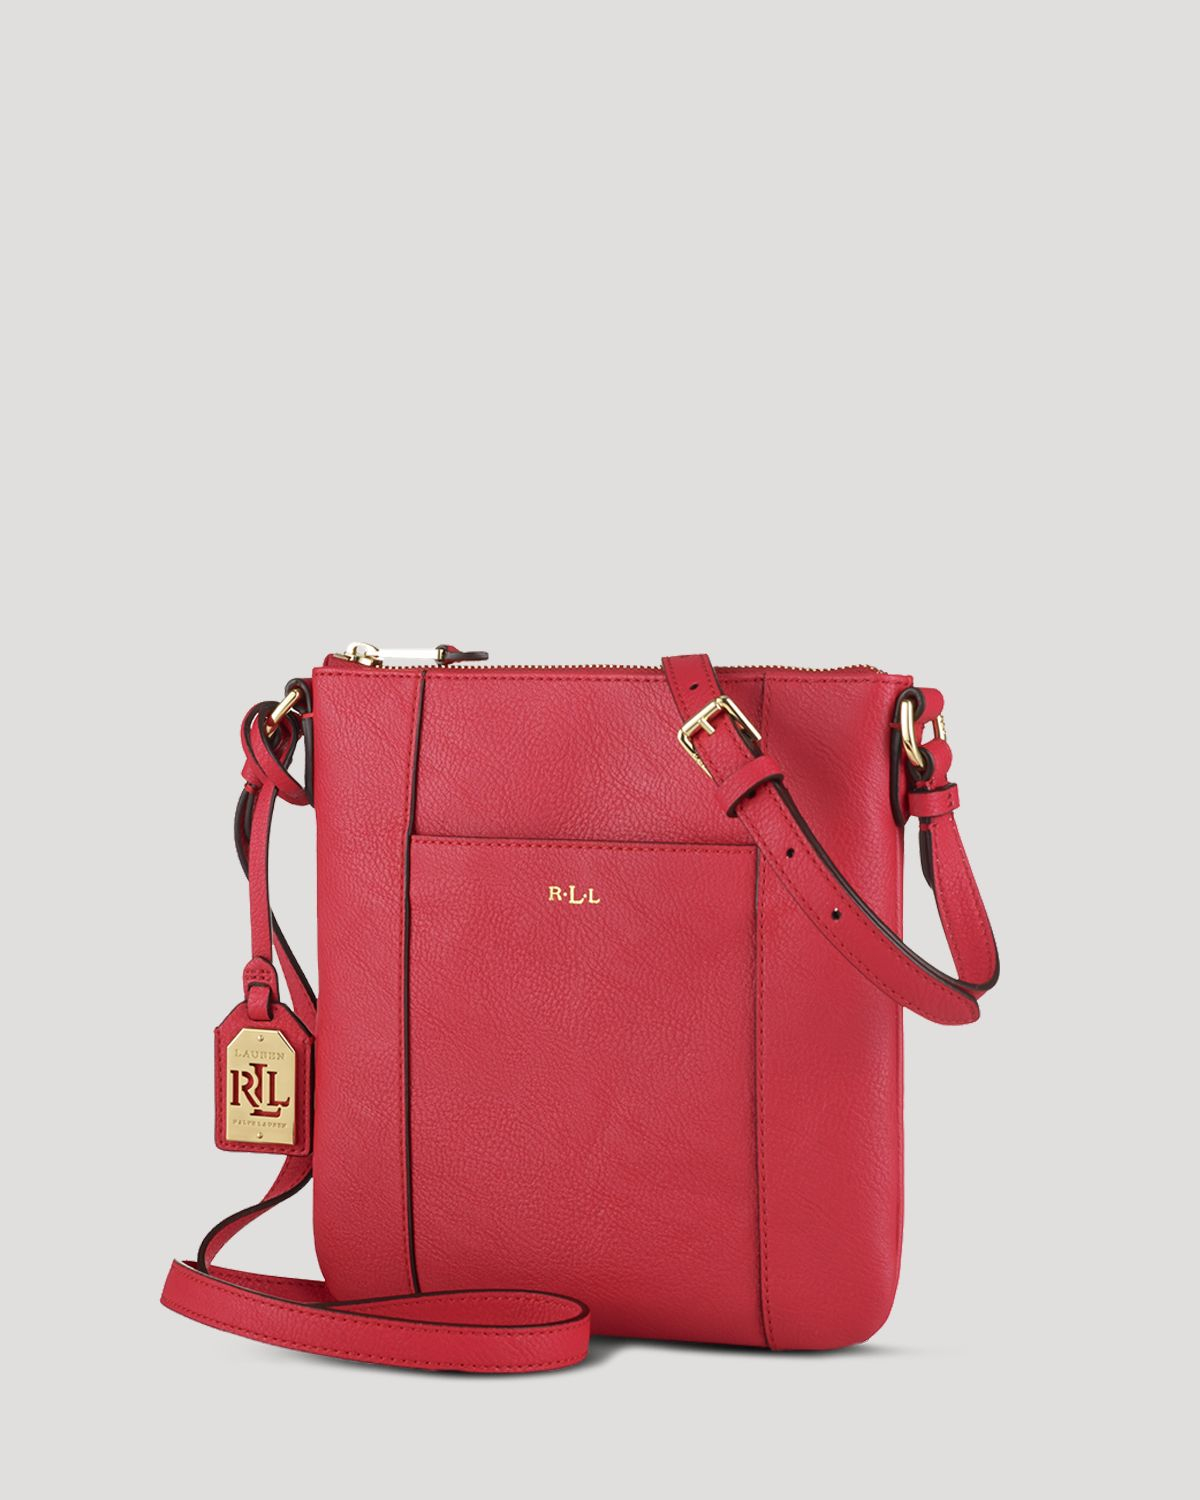 Red Ralph Lauren Purse Best Image Ccdbb